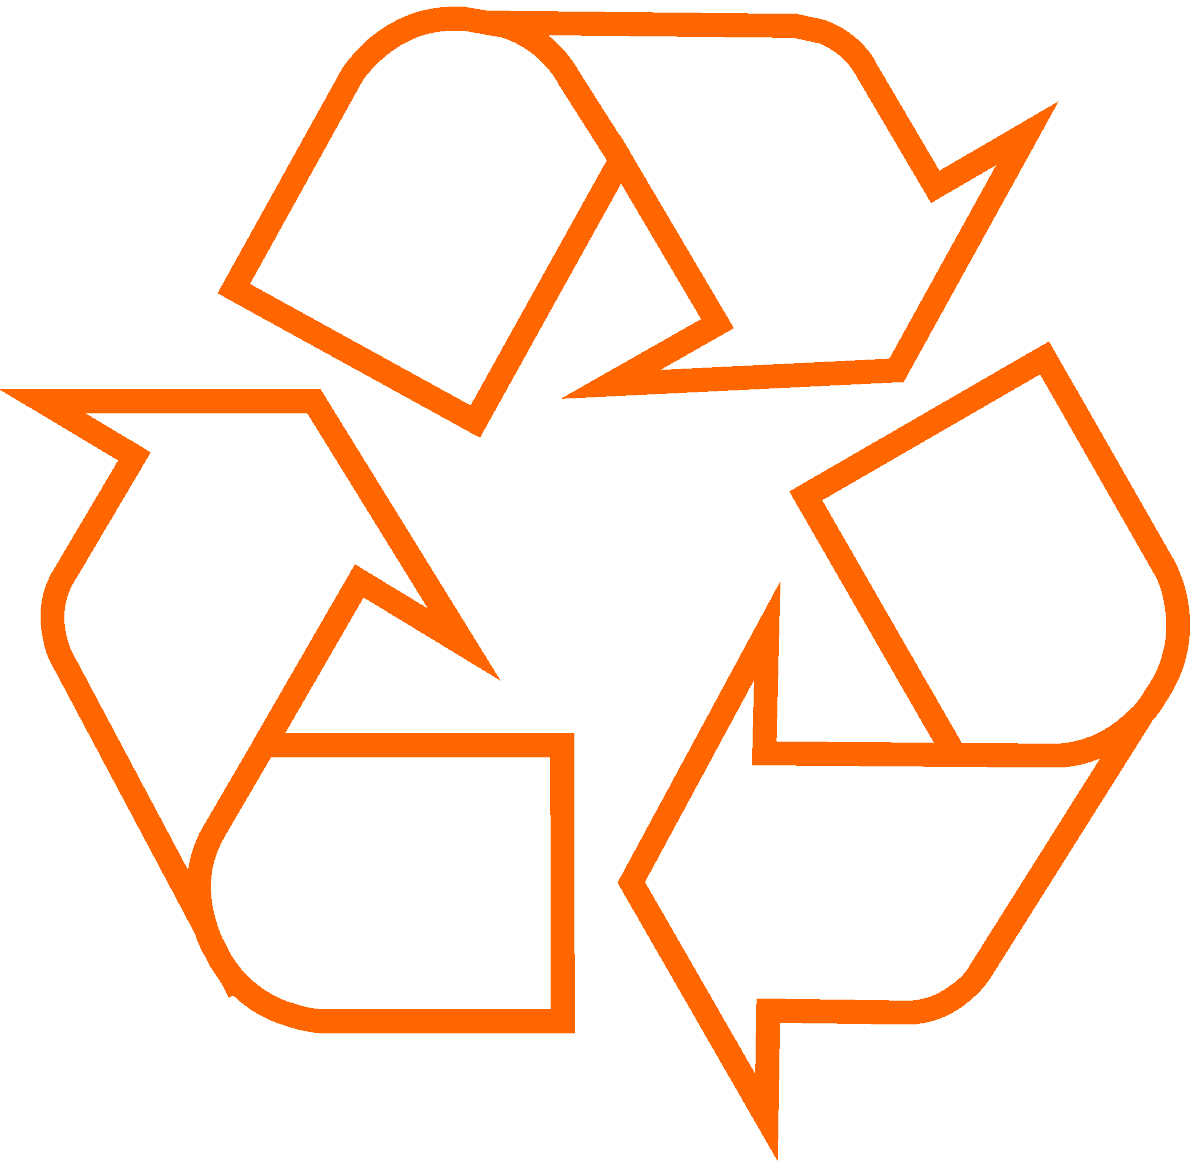 recycling-symbol-icon-outline-orange